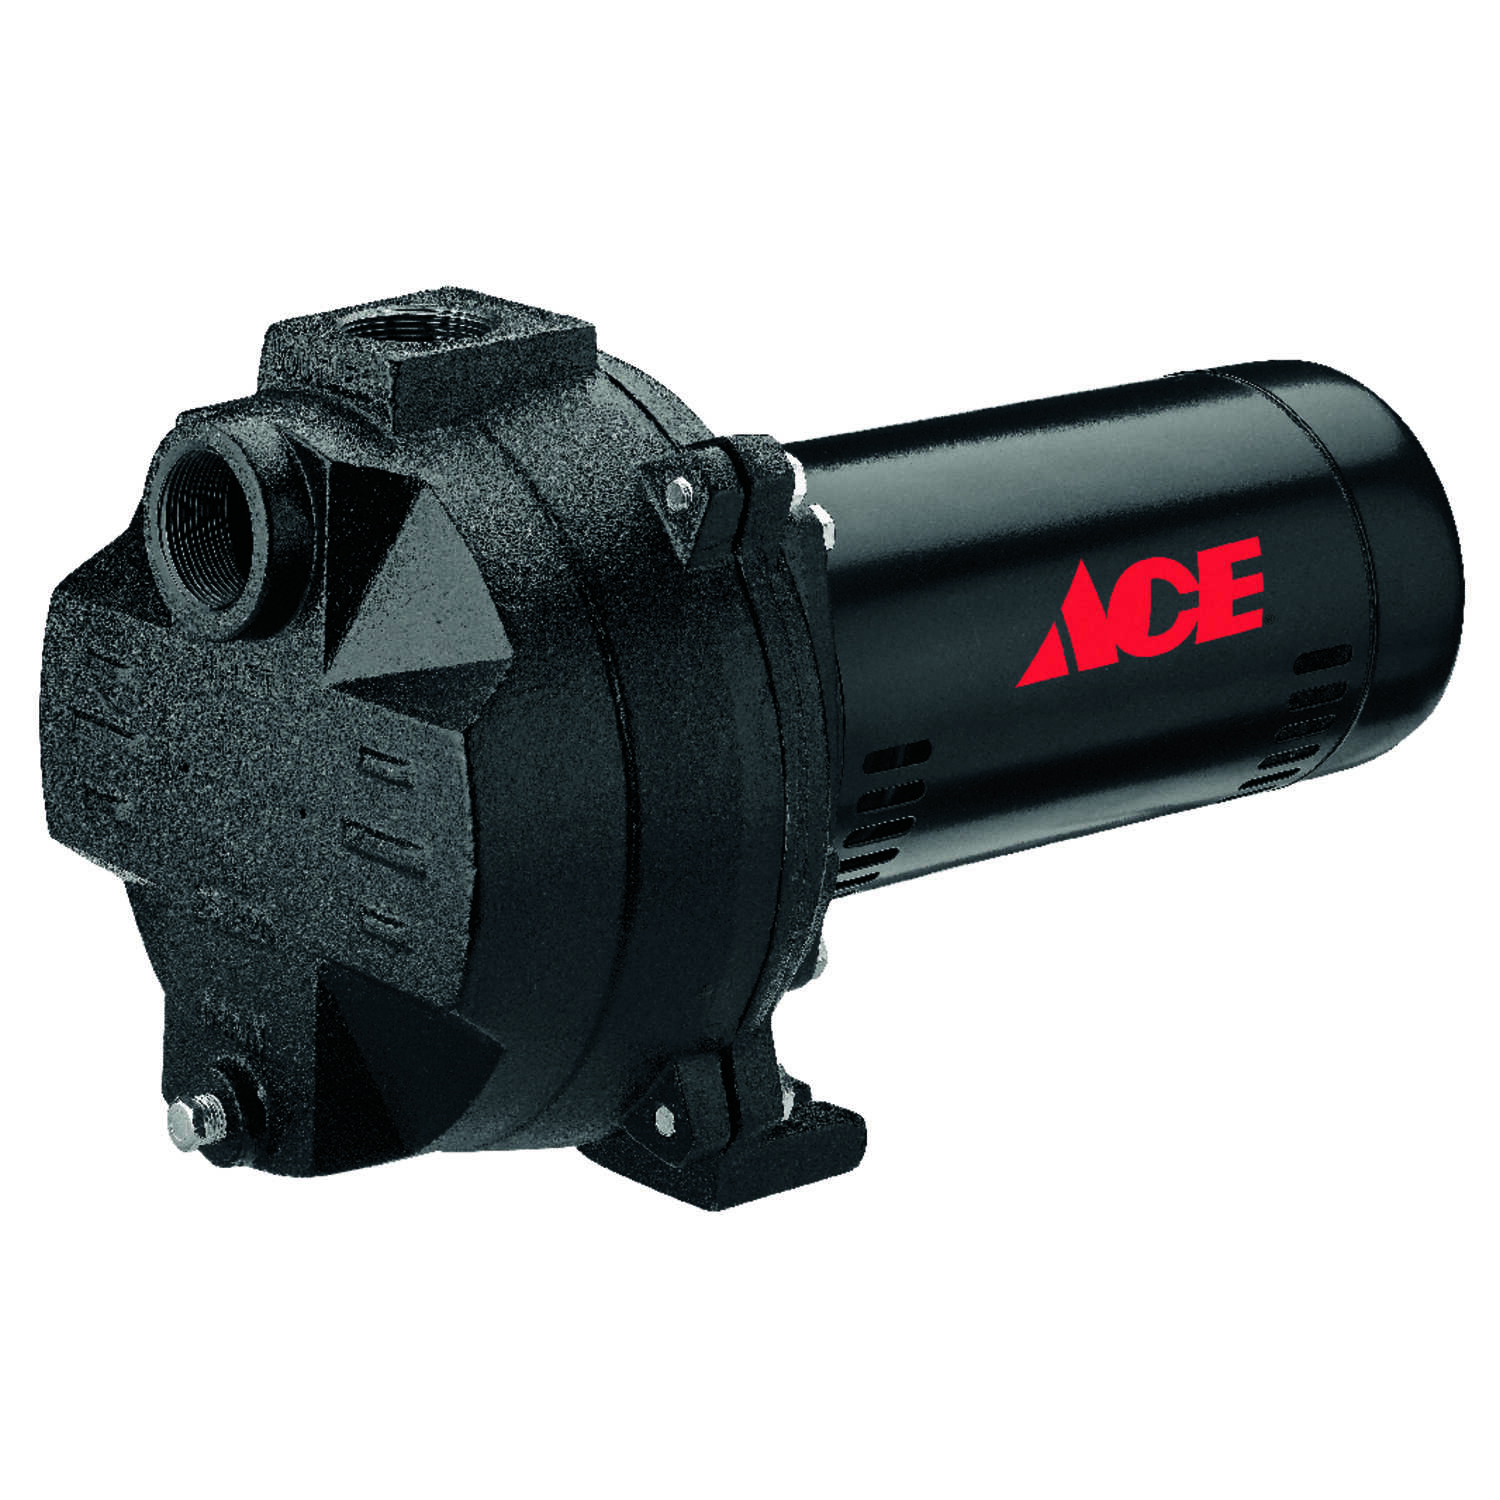 Ace  Cast Iron  Sprinkler Pump  2 hp 32